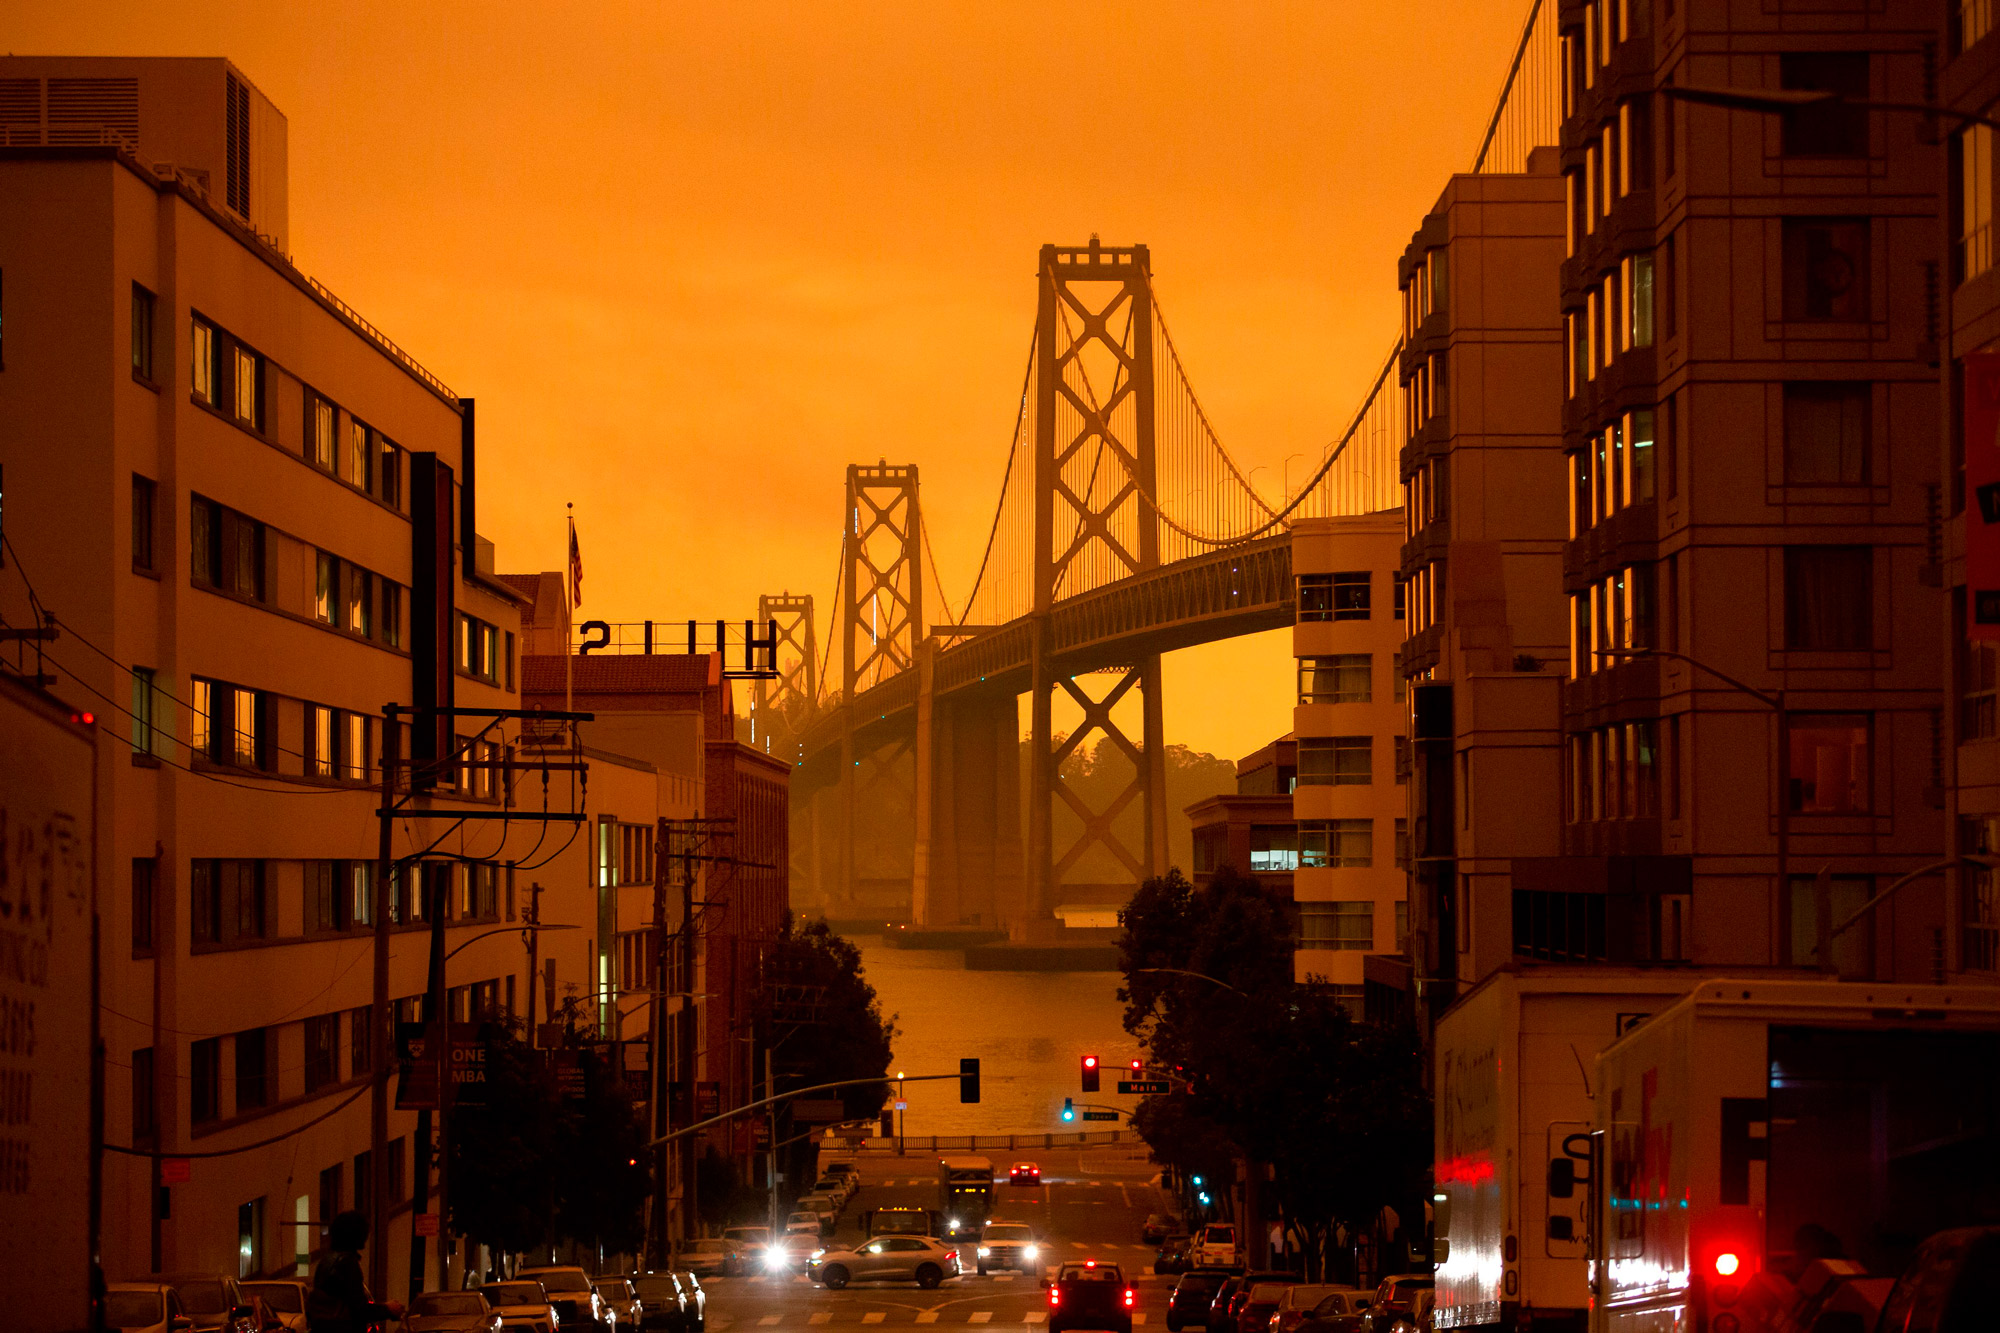 The San Francisco Bay Bridge is seen along Harrison Street under a smoke-filled sky in San Francisco, California, on September 9.